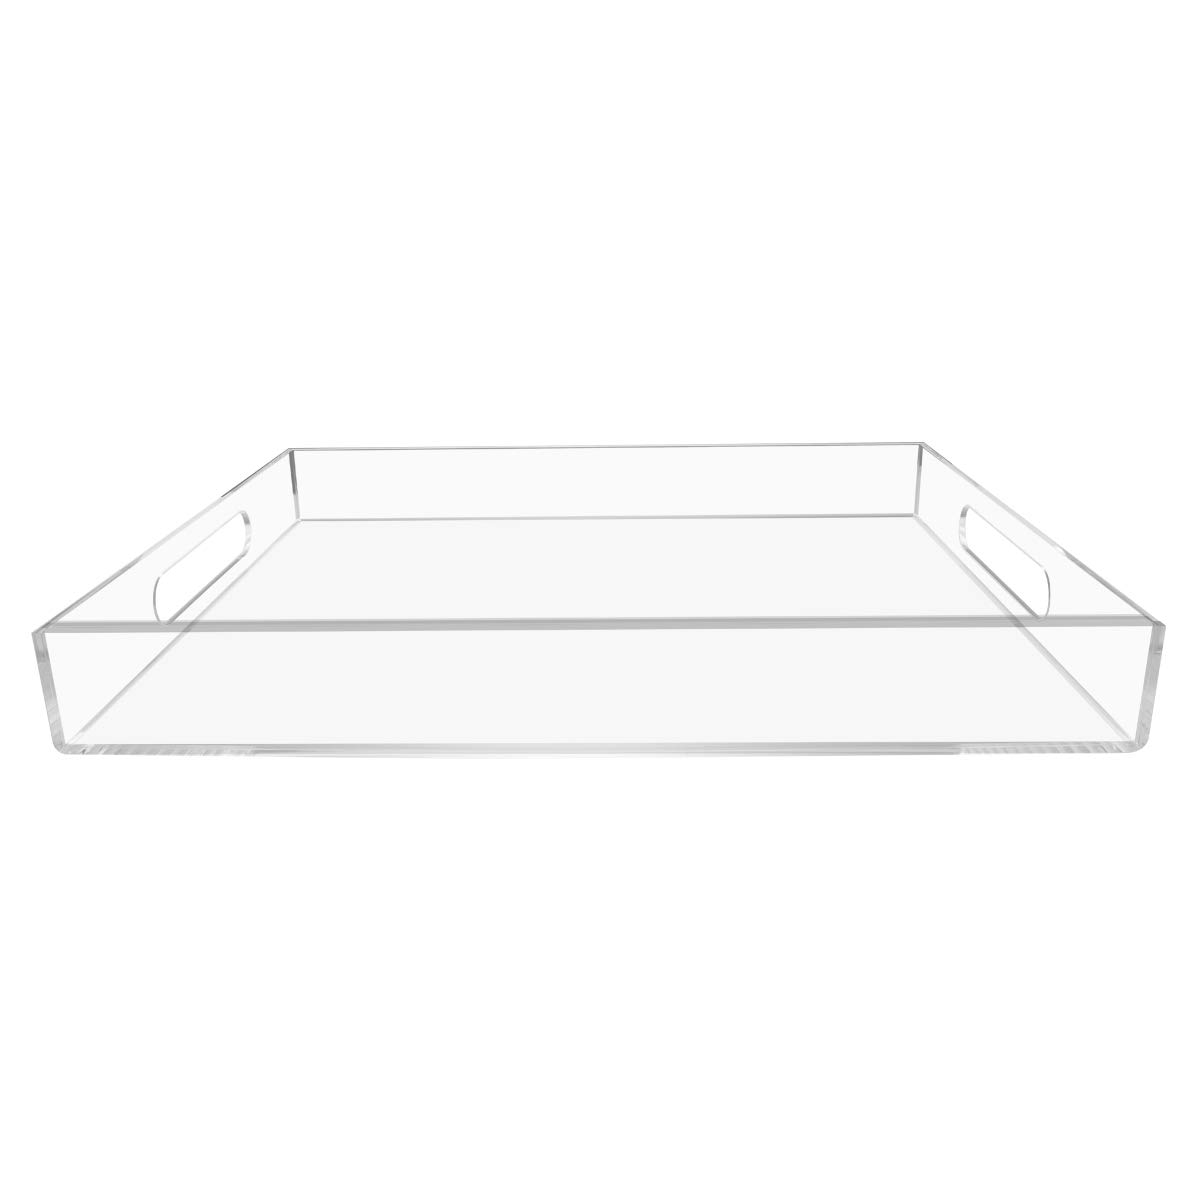 NIUBEE Clear Serving Tray 12x16 Inches -Spill Proof- Acrylic Decorative Tray Organiser for Ottoman Coffee Table Countertop with Handles by NIUBEE